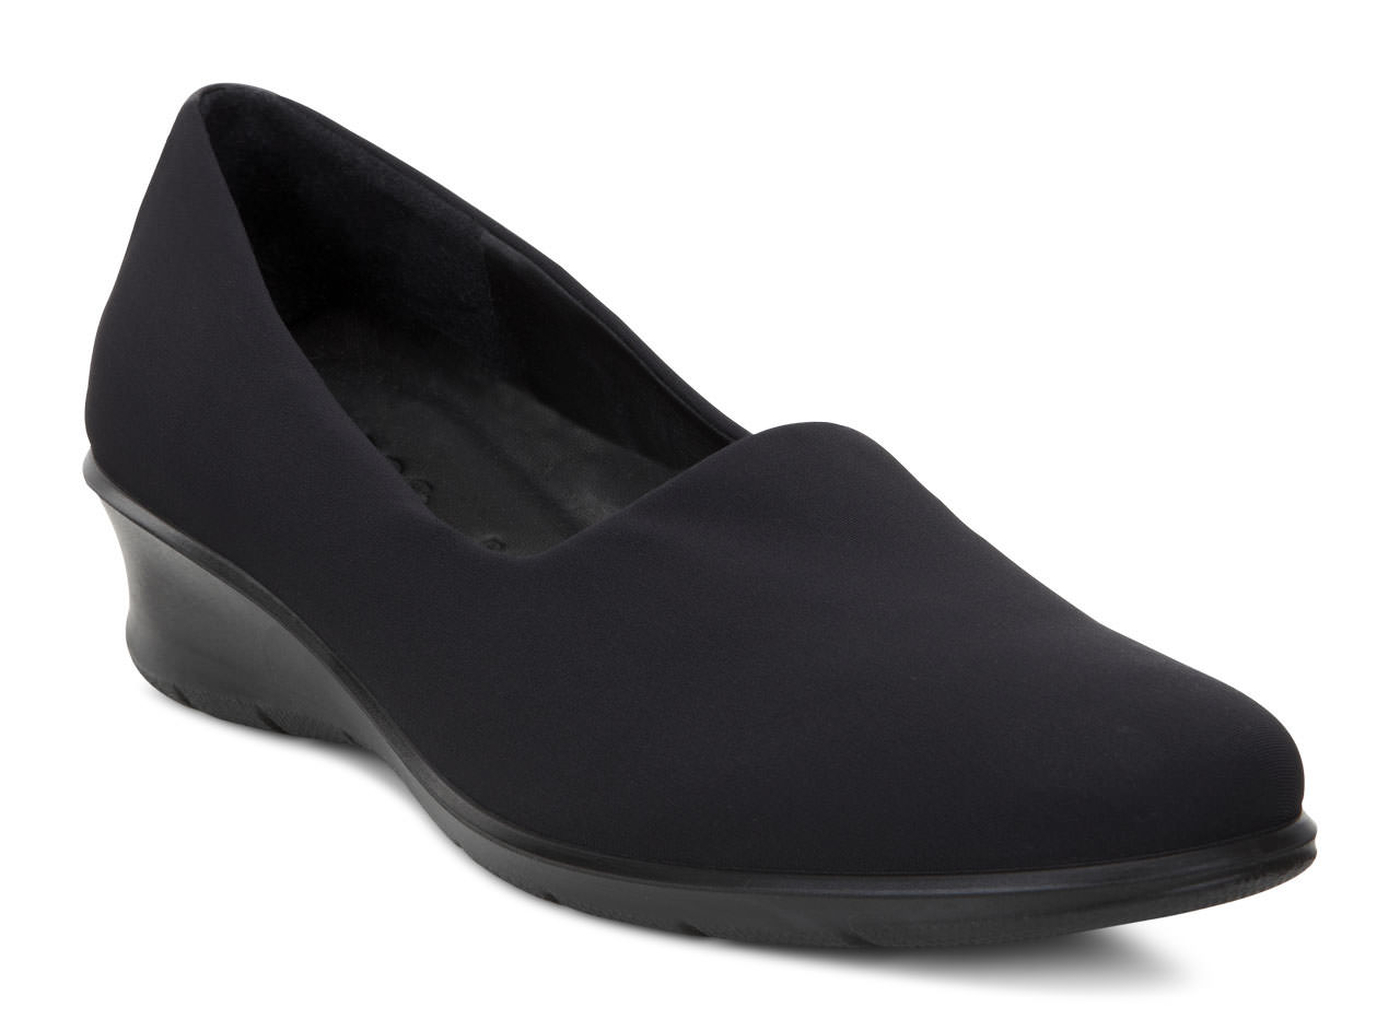 ECCO FELICIA Stretch Slip On